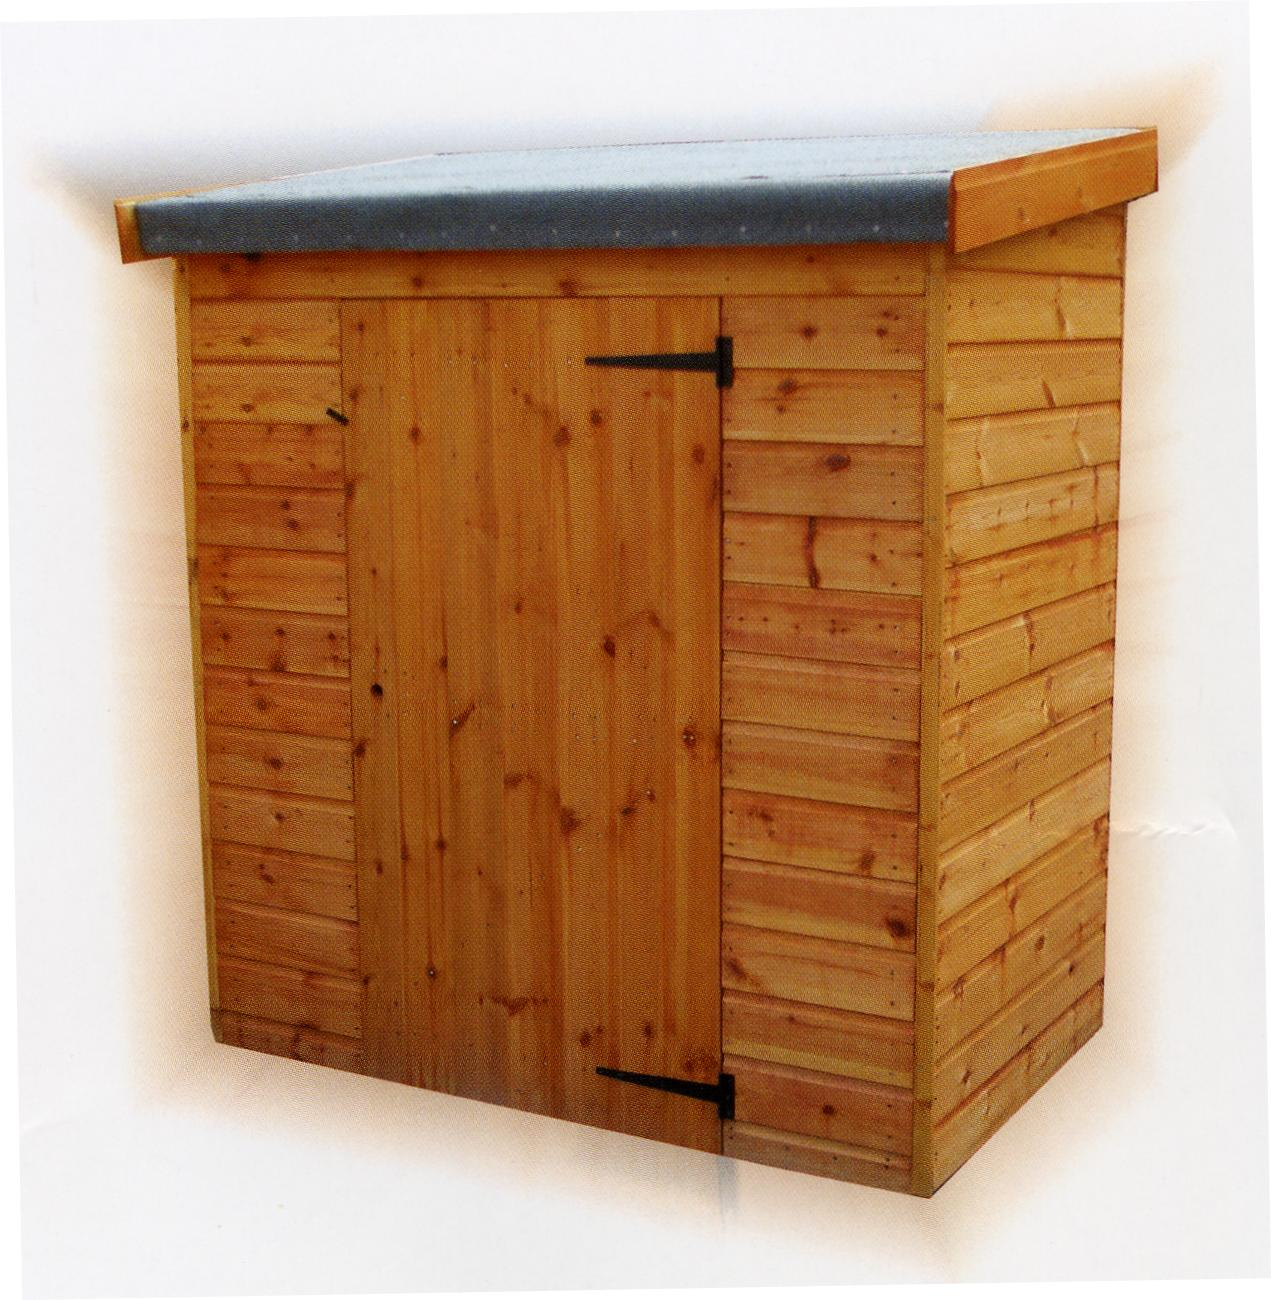 Small Storage Shed Windows,garage Storage Shed Designs,wooden Toy Chest  Plans Online   You Shoud Know